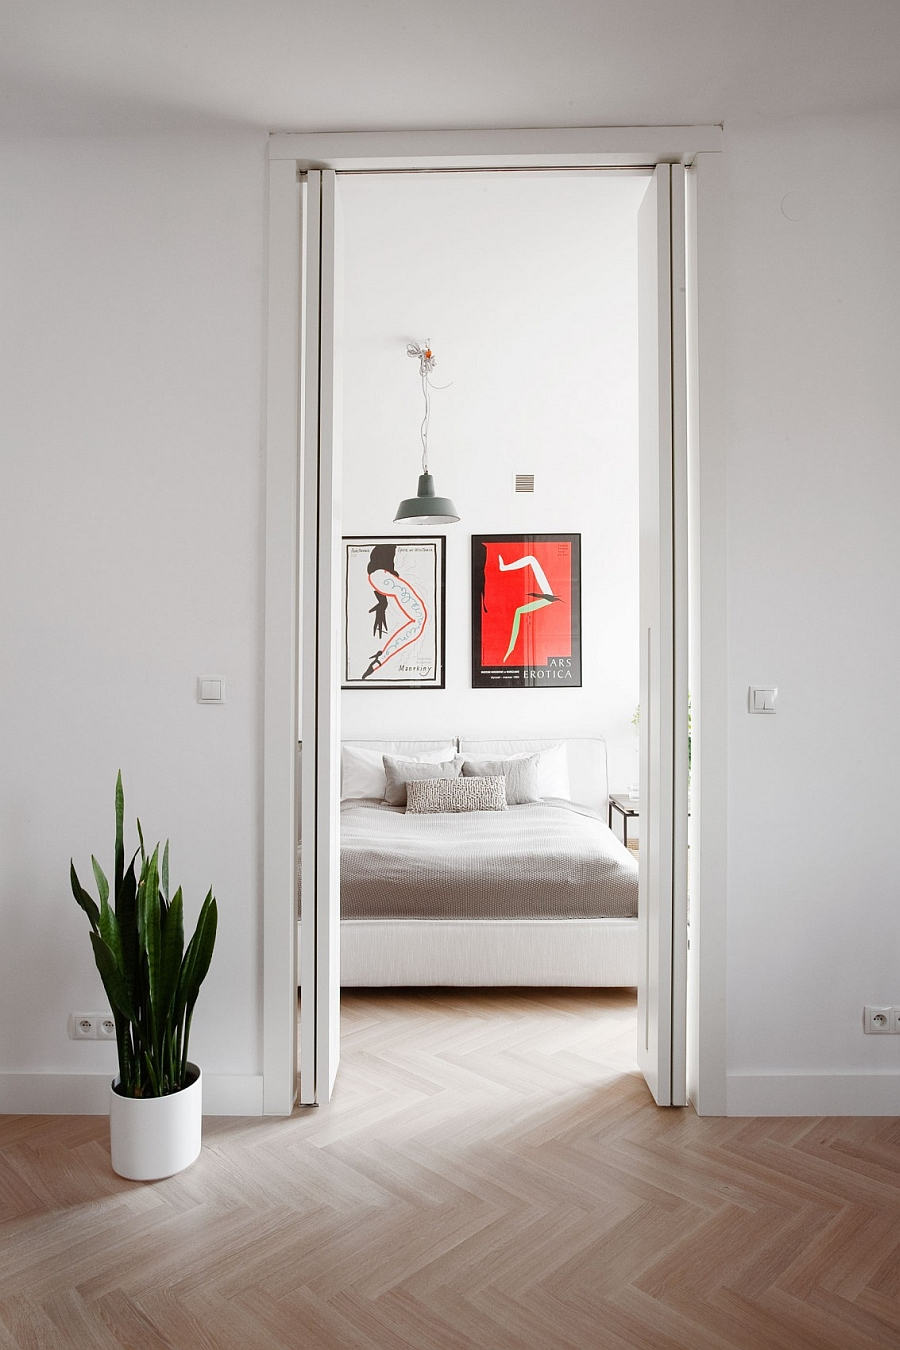 70s-80s Vintage Posters Adding Color to The Contemporary Bedroom